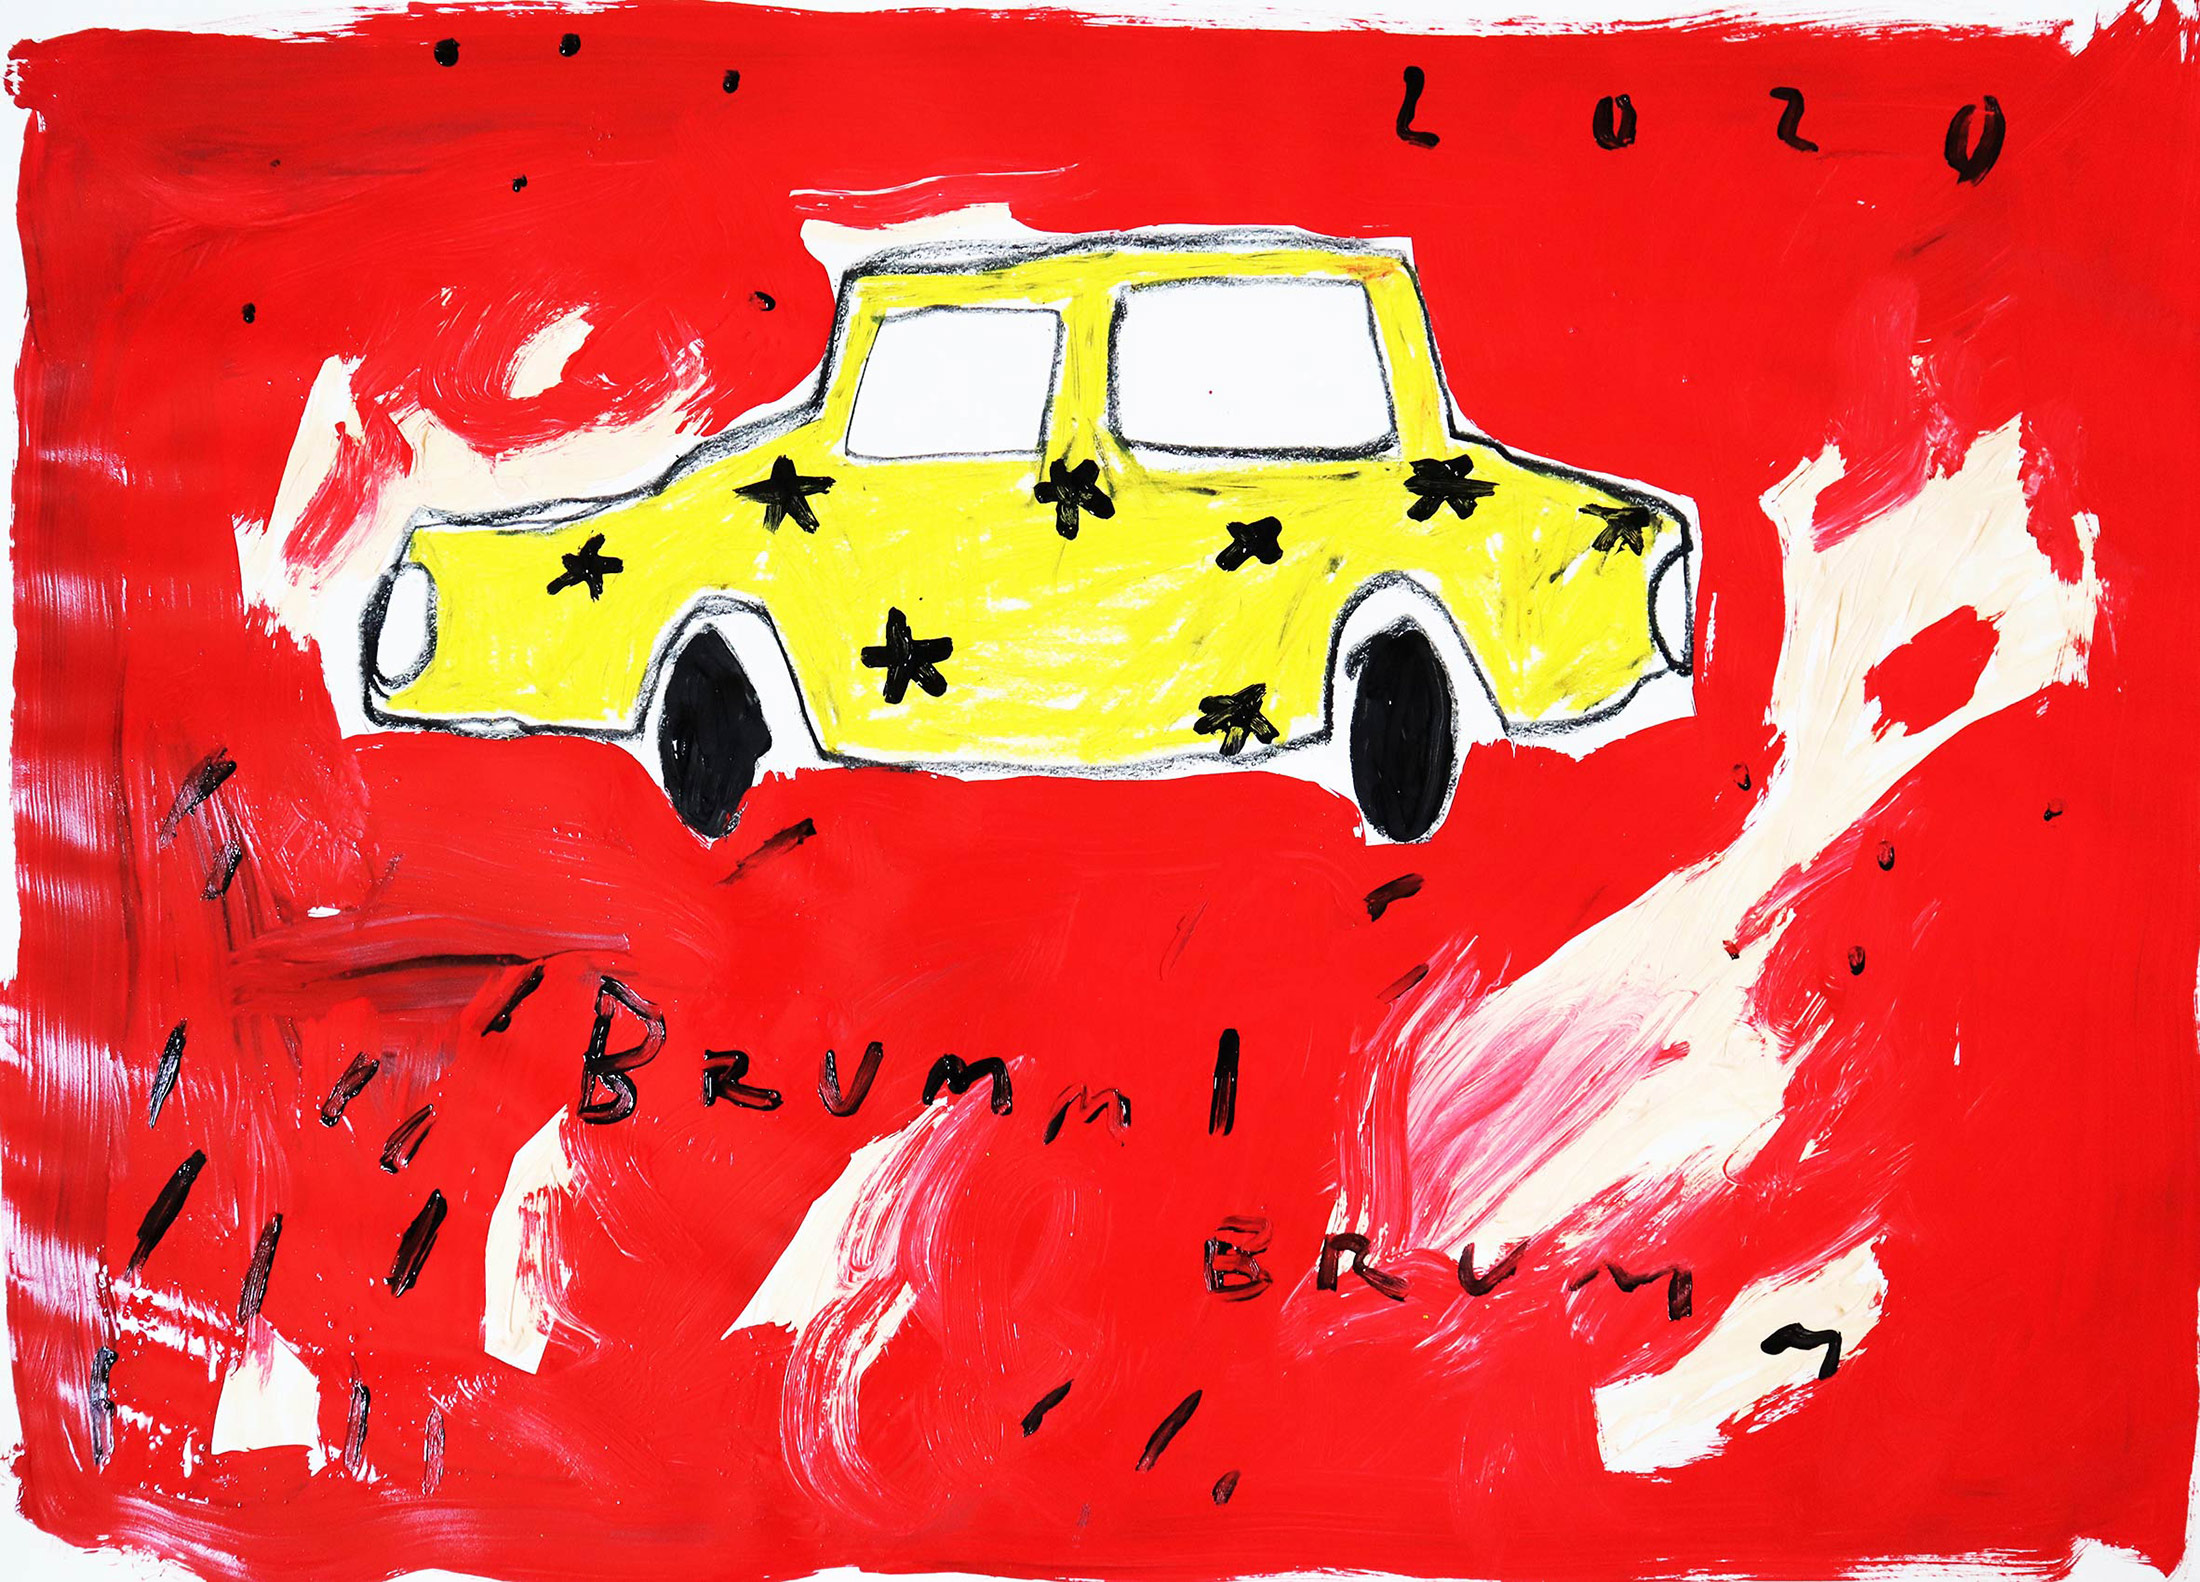 domi gratz, car, red, oil pastels, student of fine art, female artist, online viewing room, online shop, collect art